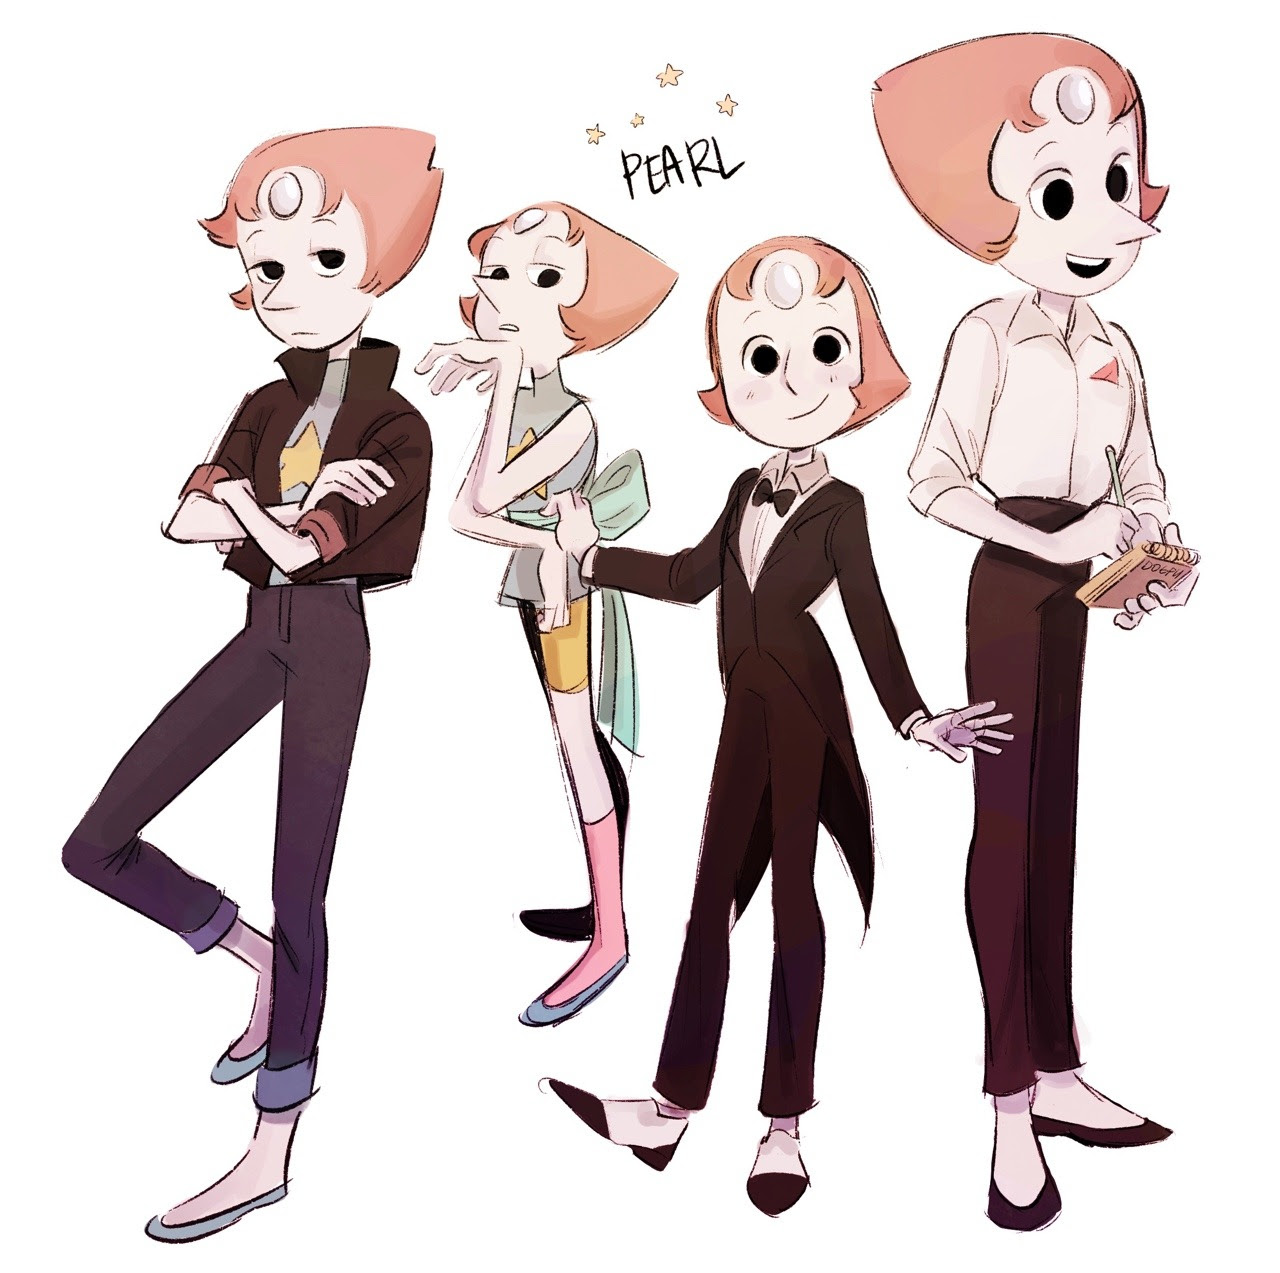 some pearls and one repressed nerd